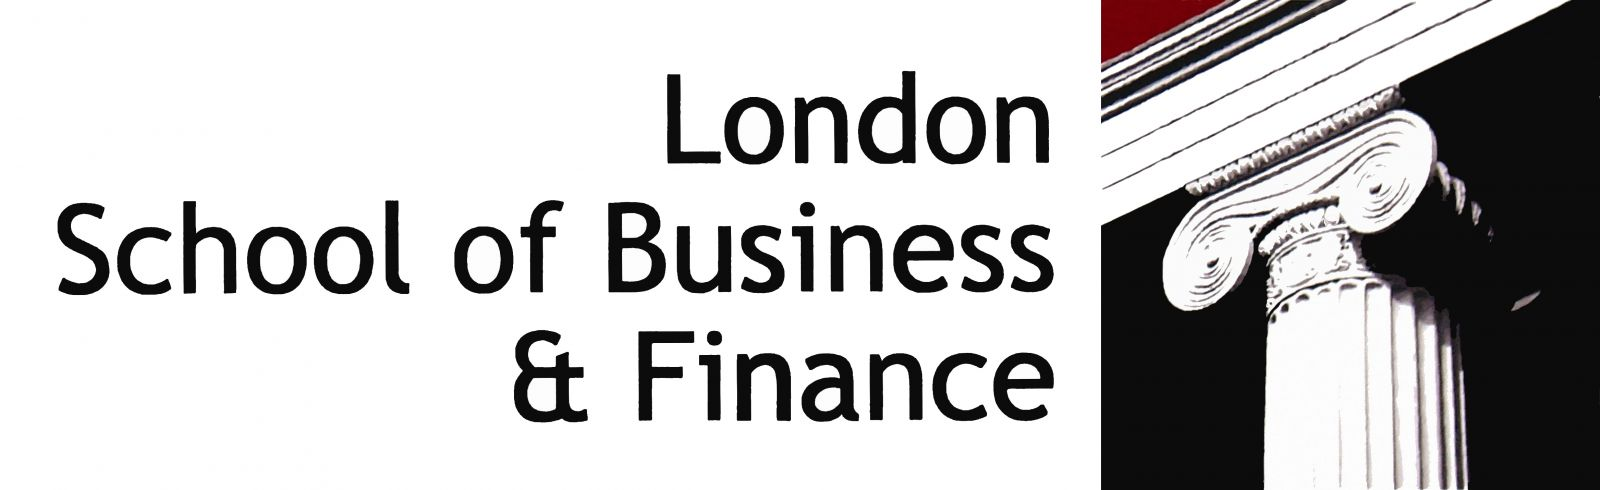 Học bổng du học Anh – London School of Business and Finance